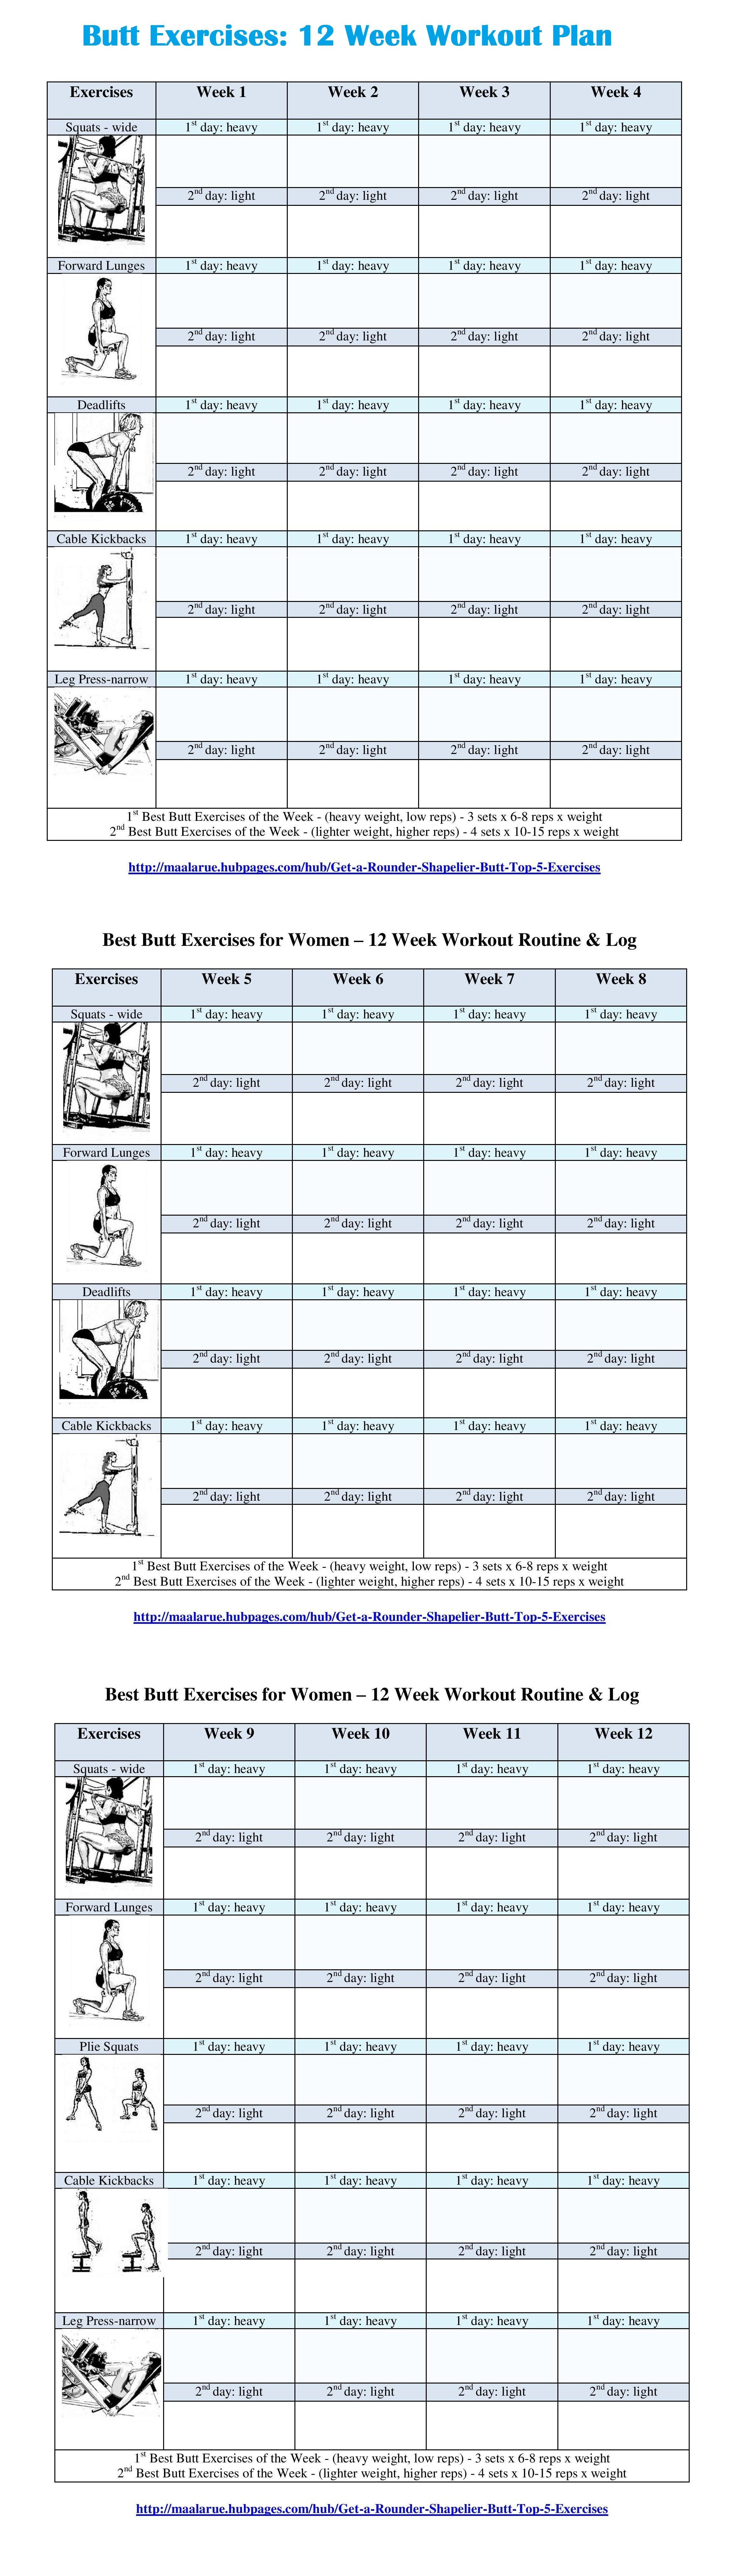 Best Butt Workouts For Women - Free Printable 12 Week Butt Workout Plan - Free Printable Gym Workout Routines